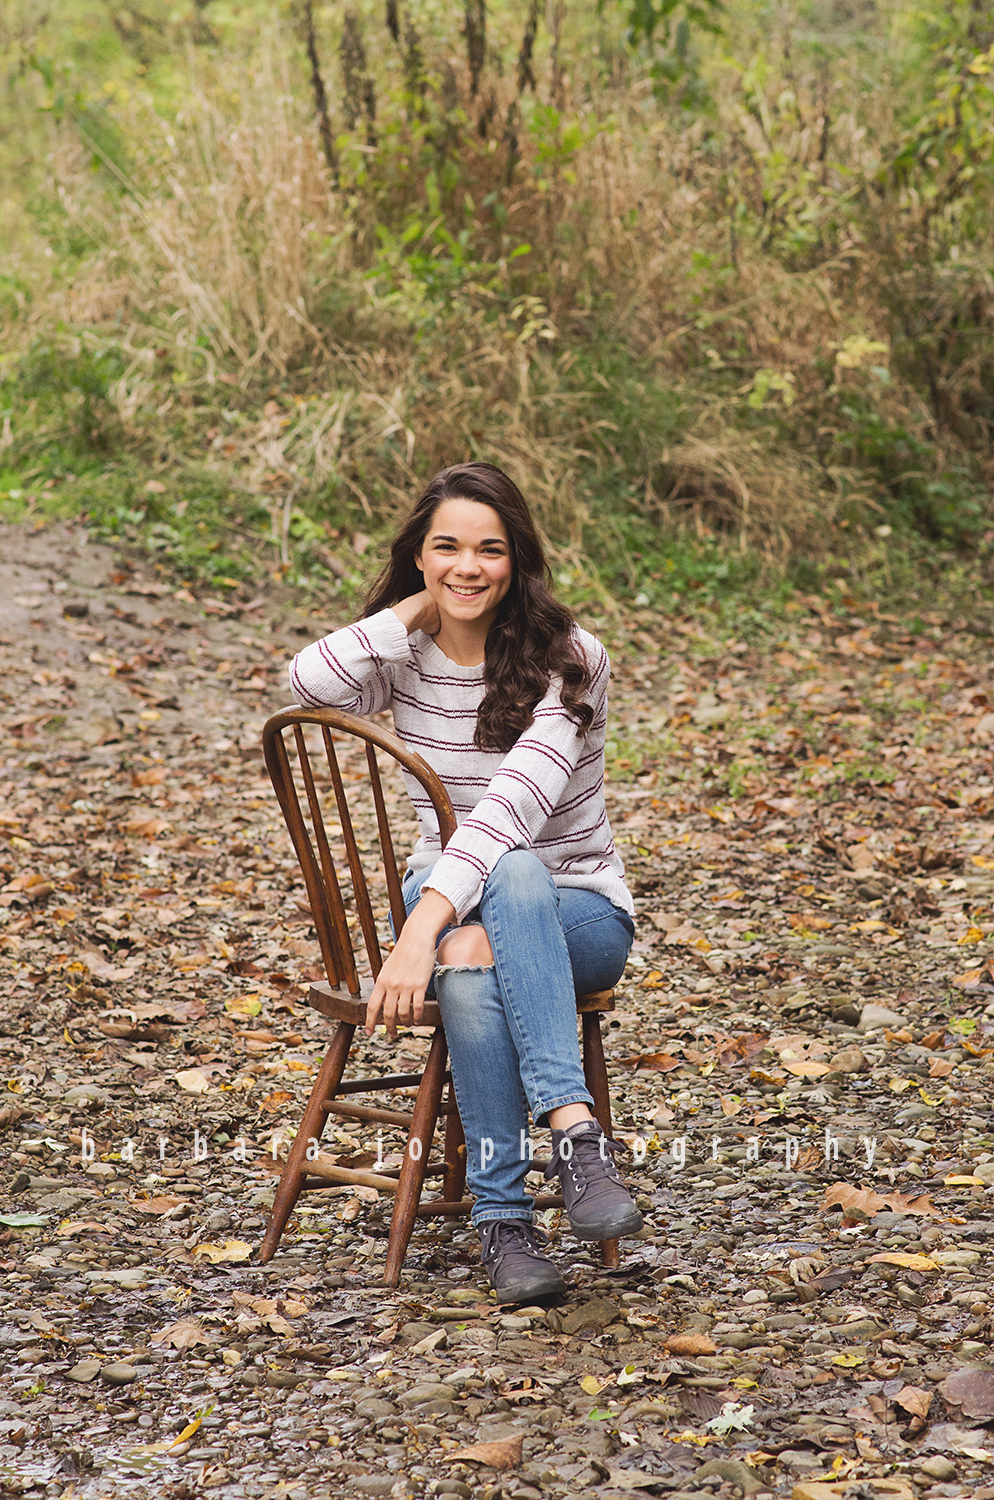 bjp-senior-pictures-nphs-portraits-dover-ohio-northeast-class-of-2018-laurel27.png